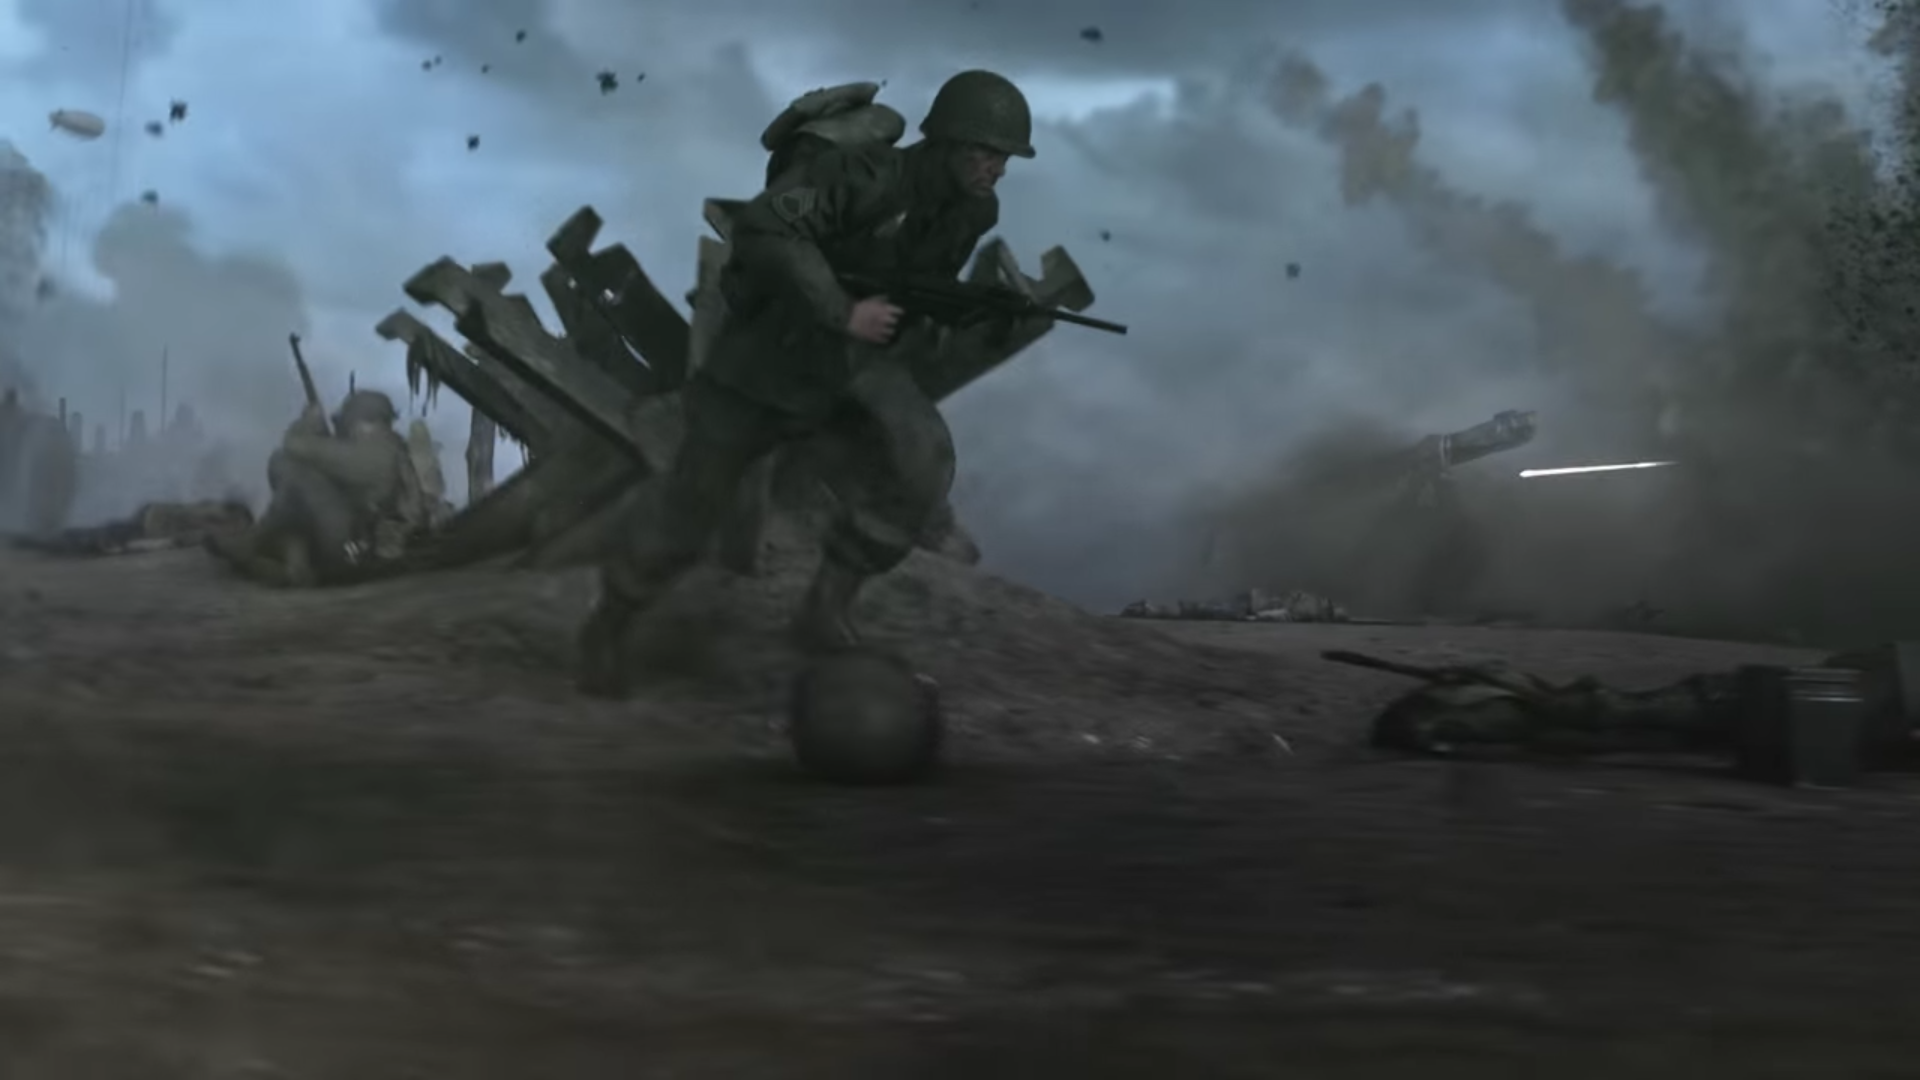 Call Of Duty Wwii Takes Back The Holiday Makes 500m In First 3 Days